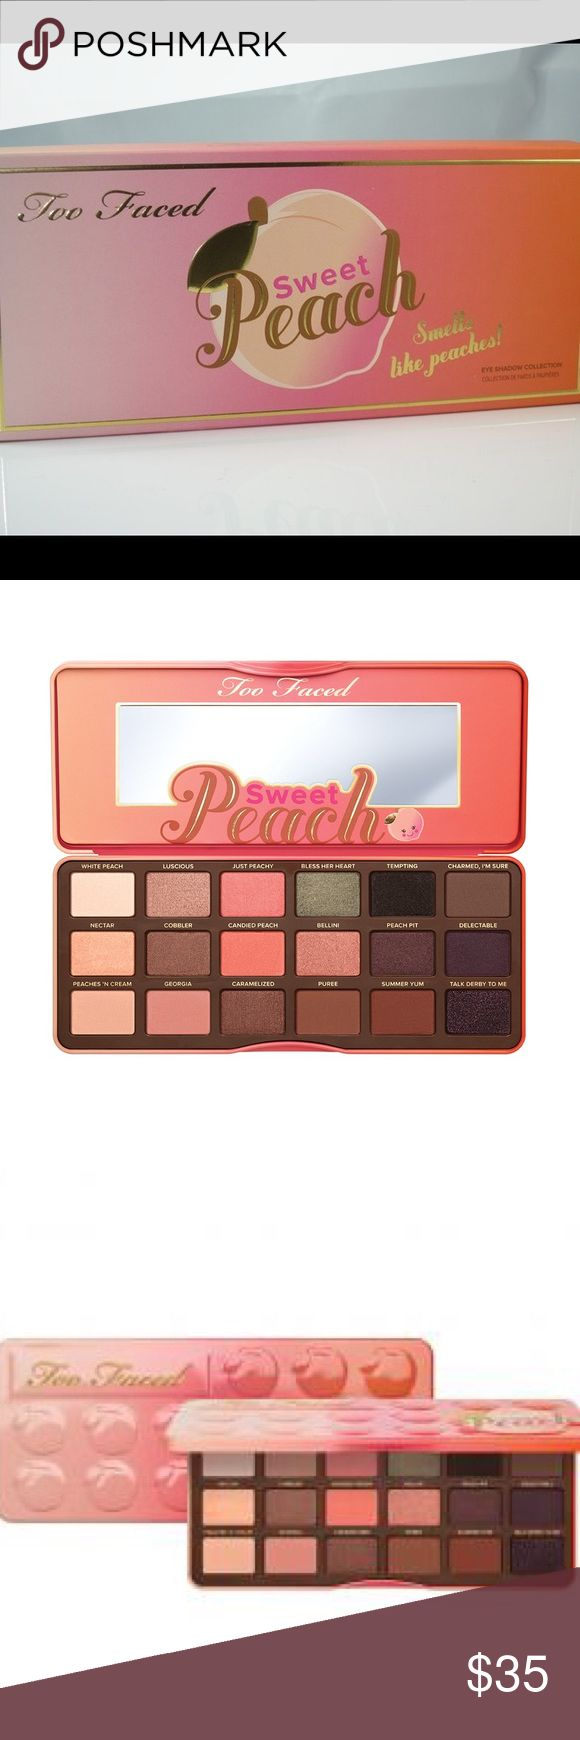 New, Too Faced Sweet Peach Eye Shadow Palette. New, Too Faced Sweet Peach Eye Shadow Palette. Very Pretty colors and it smells like peaches 🍑. Not fake Too Faced Makeup Eyeshadow